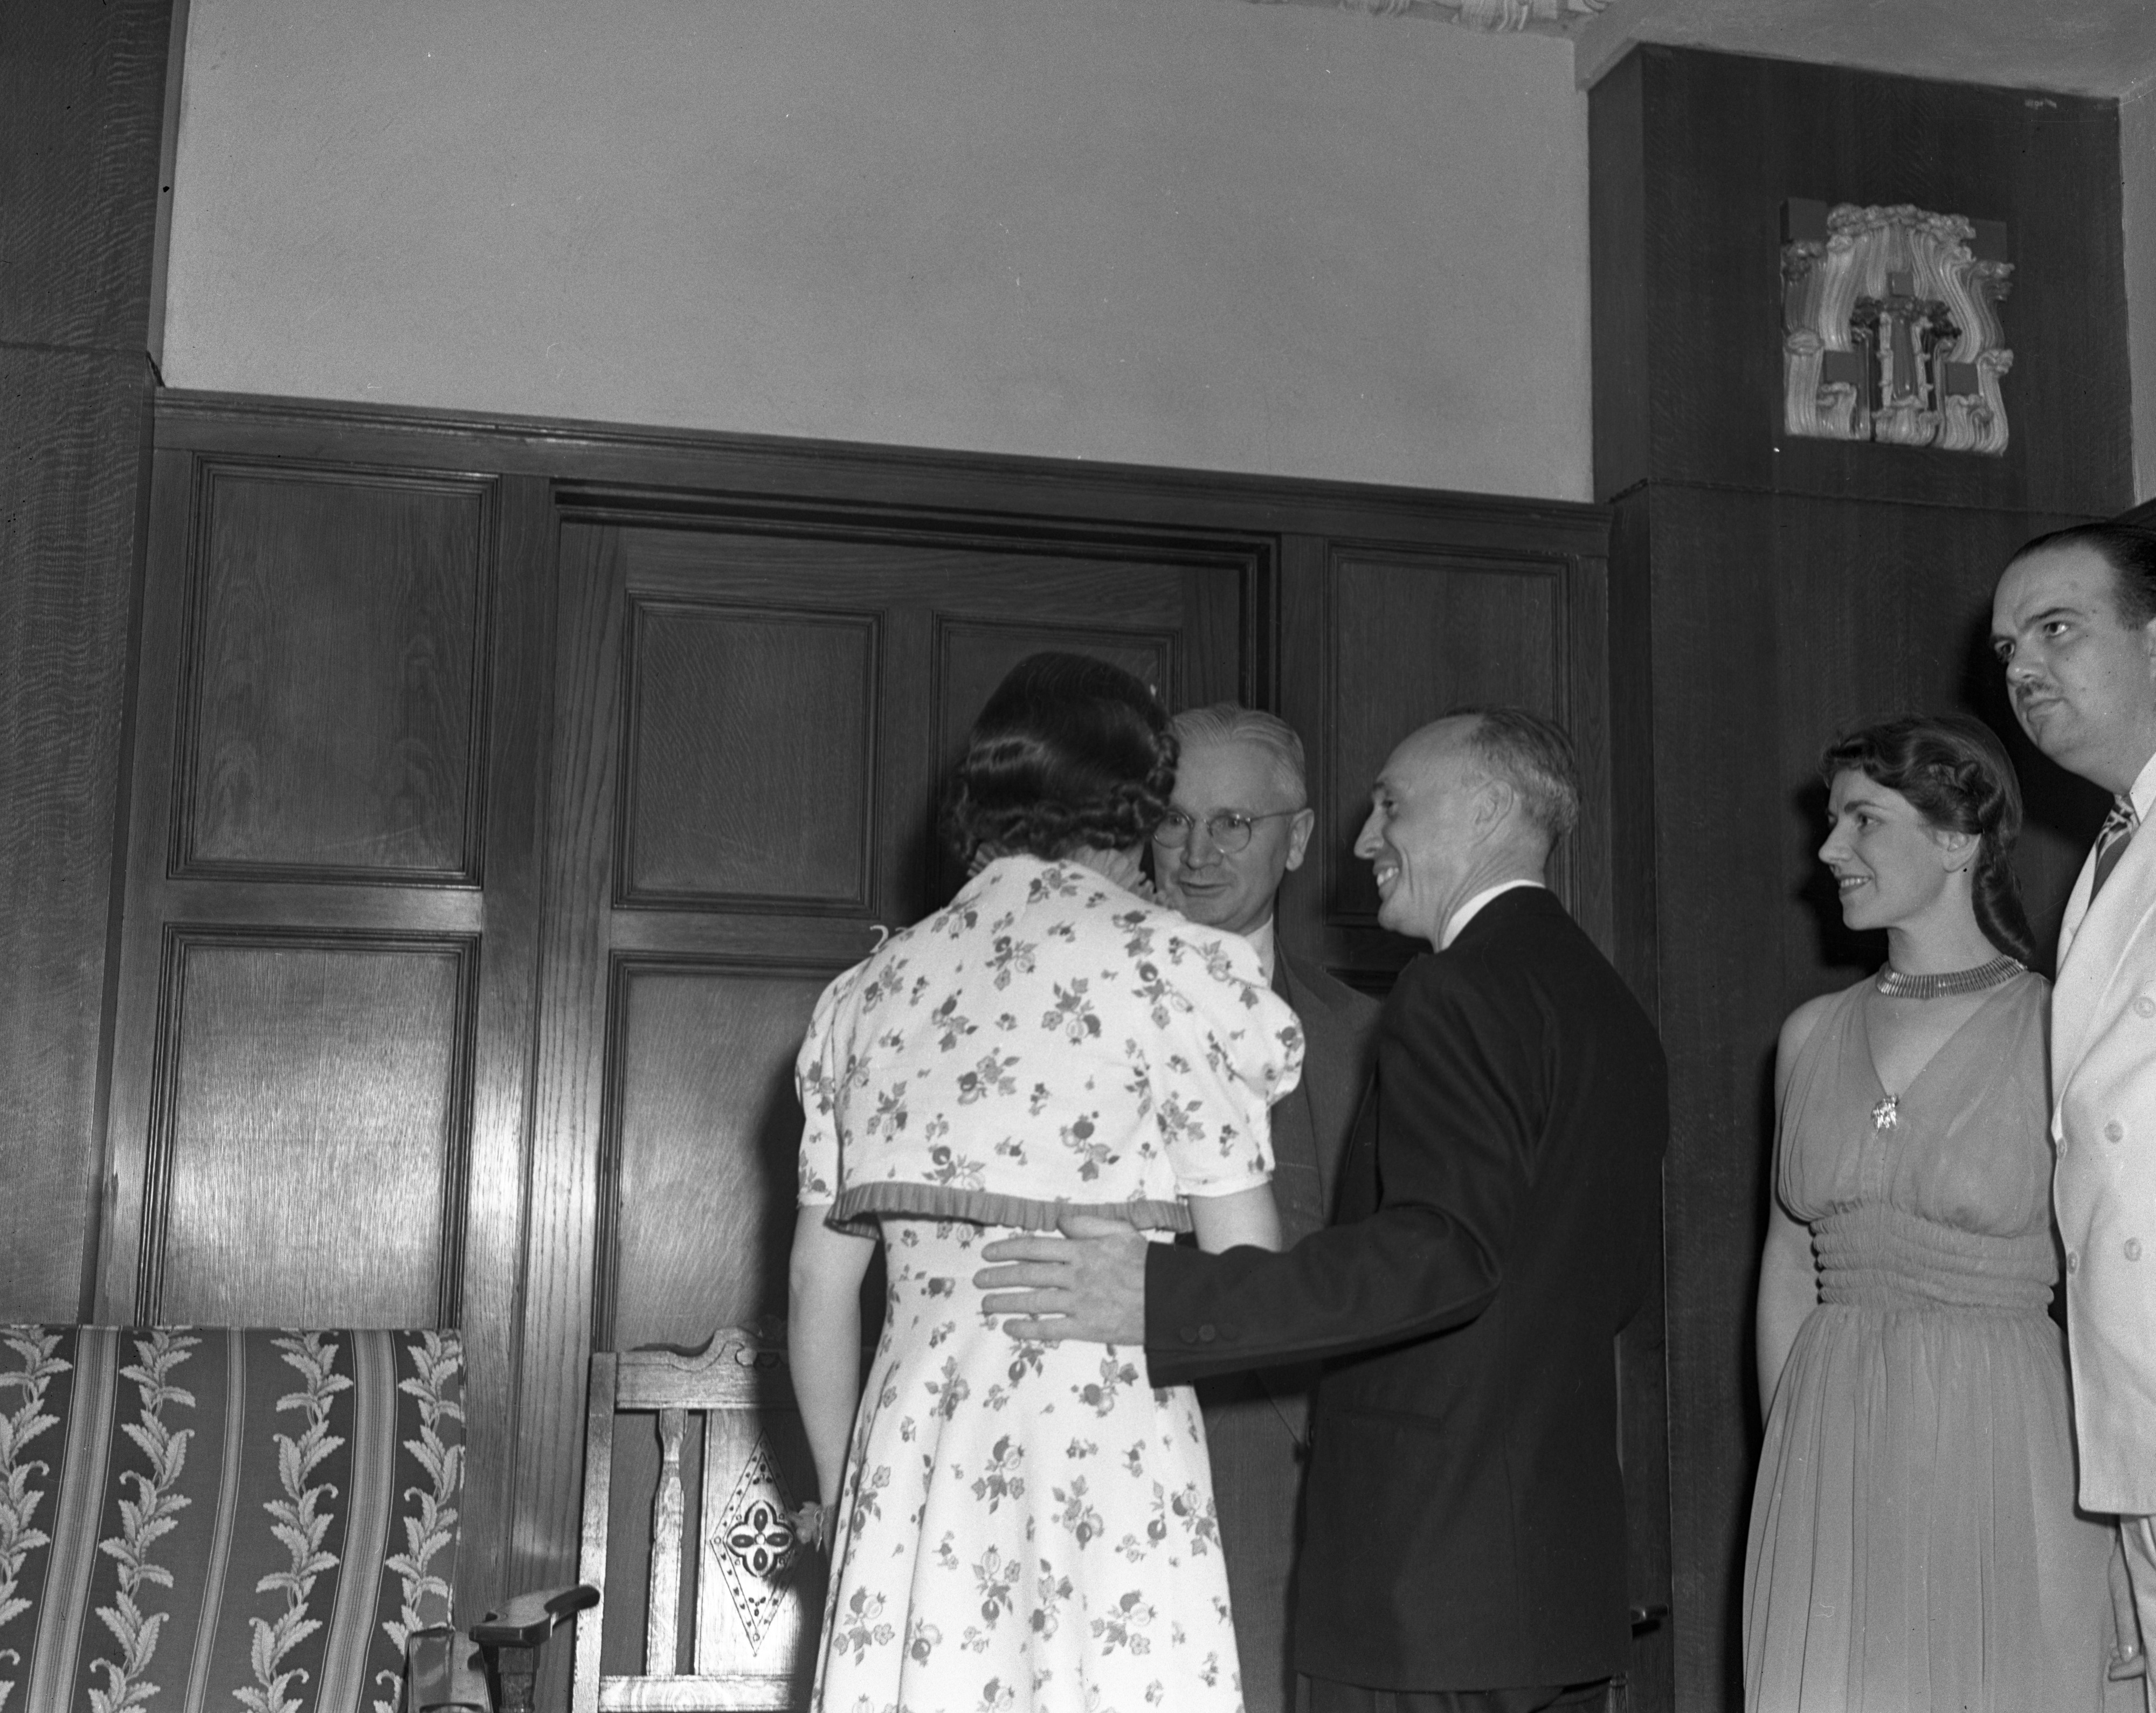 Mr. & Mrs. Harold C. Baker Chat With Justice Sharpe At The Ann Arbor Lions Club 10th Anniversary Dinner, June 1940 image